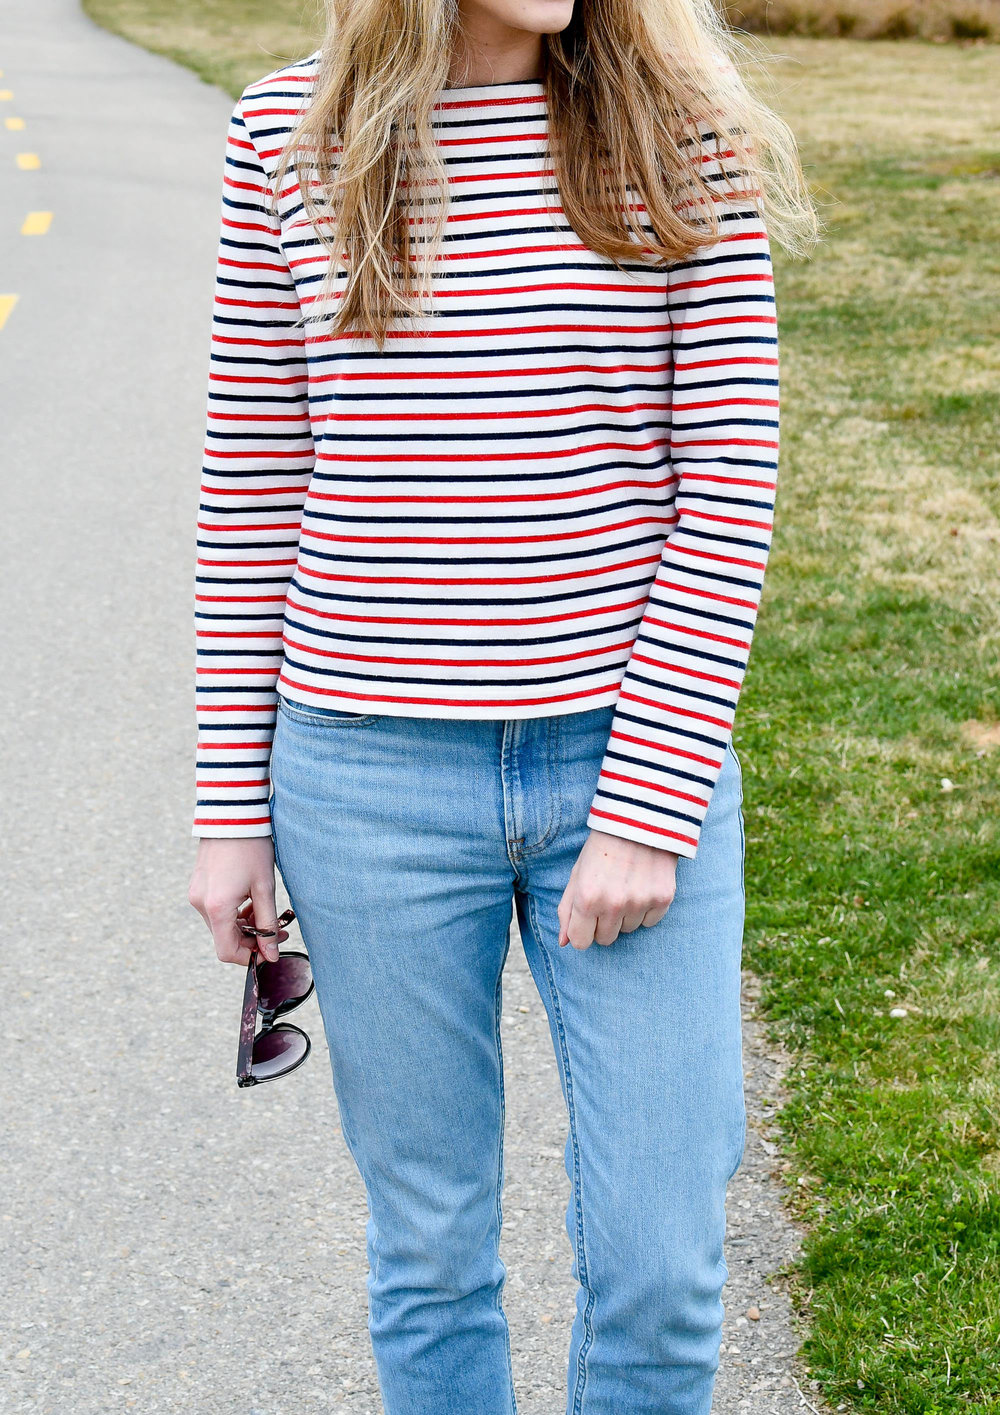 Casual spring outfit striped tee — Cotton Cashmere Cat Hair